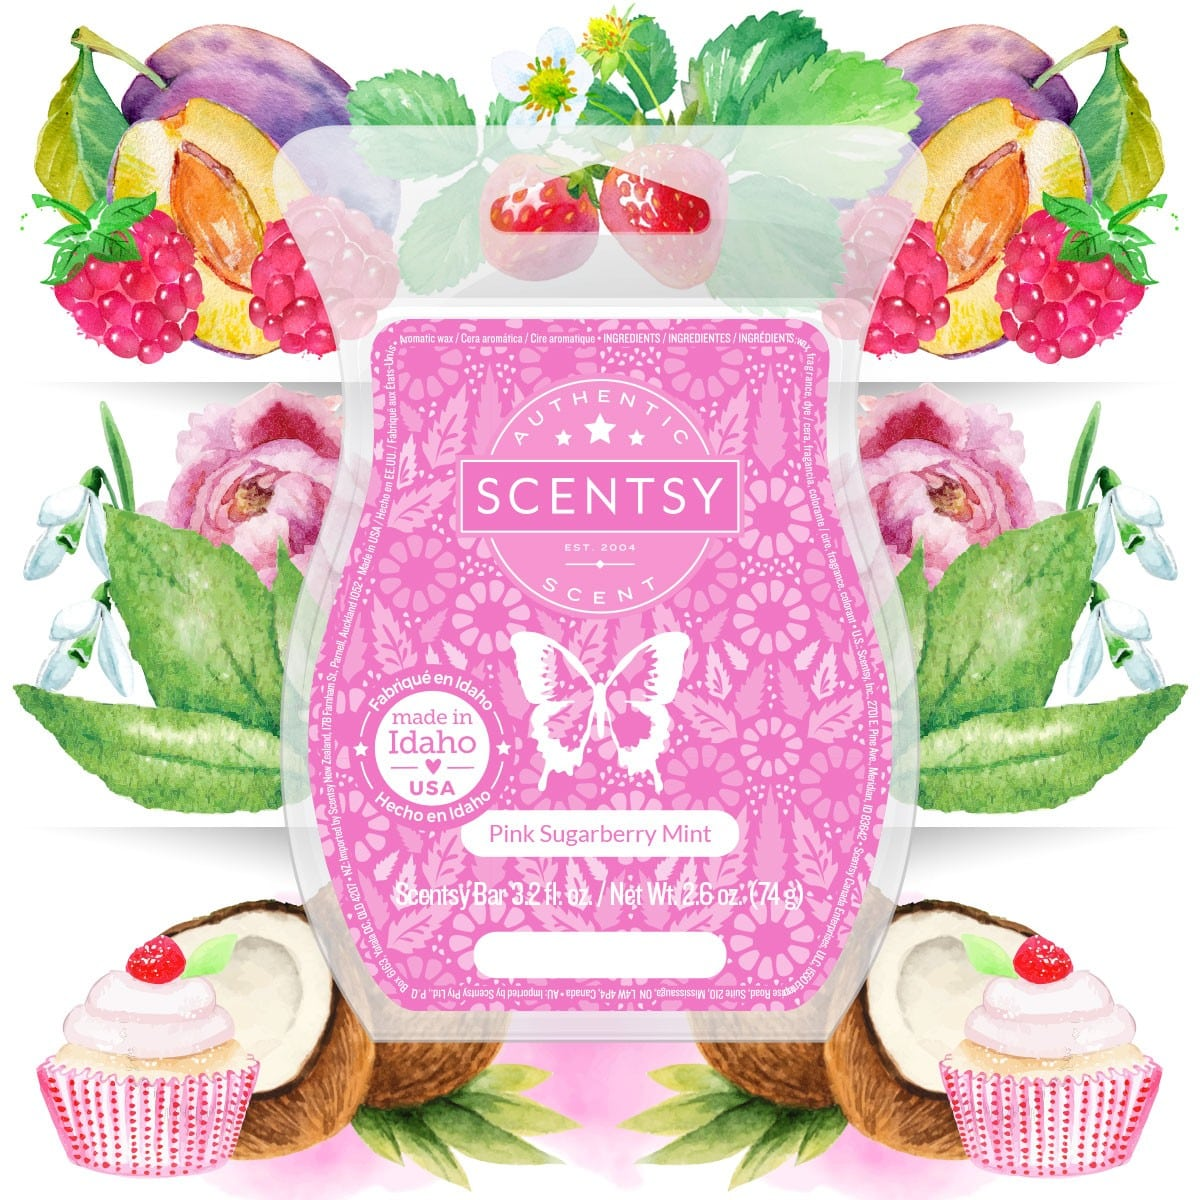 PINK SUGARBERRY MINT SCENTSY BAR DETAILS